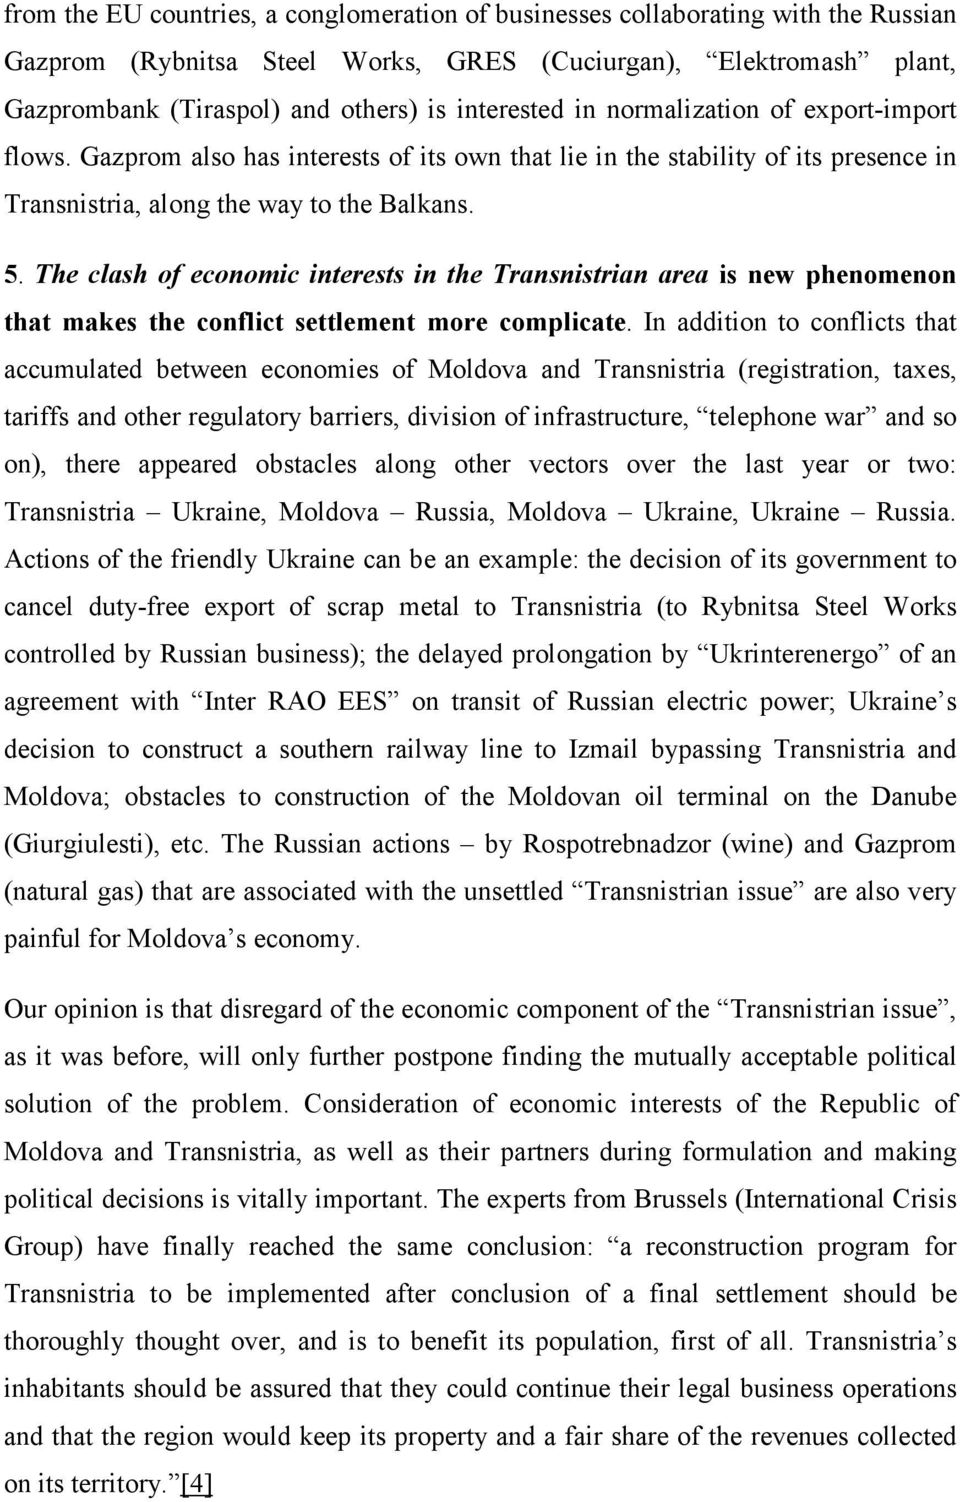 The clash of economic interests in the Transnistrian area is new phenomenon that makes the conflict settlement more complicate.